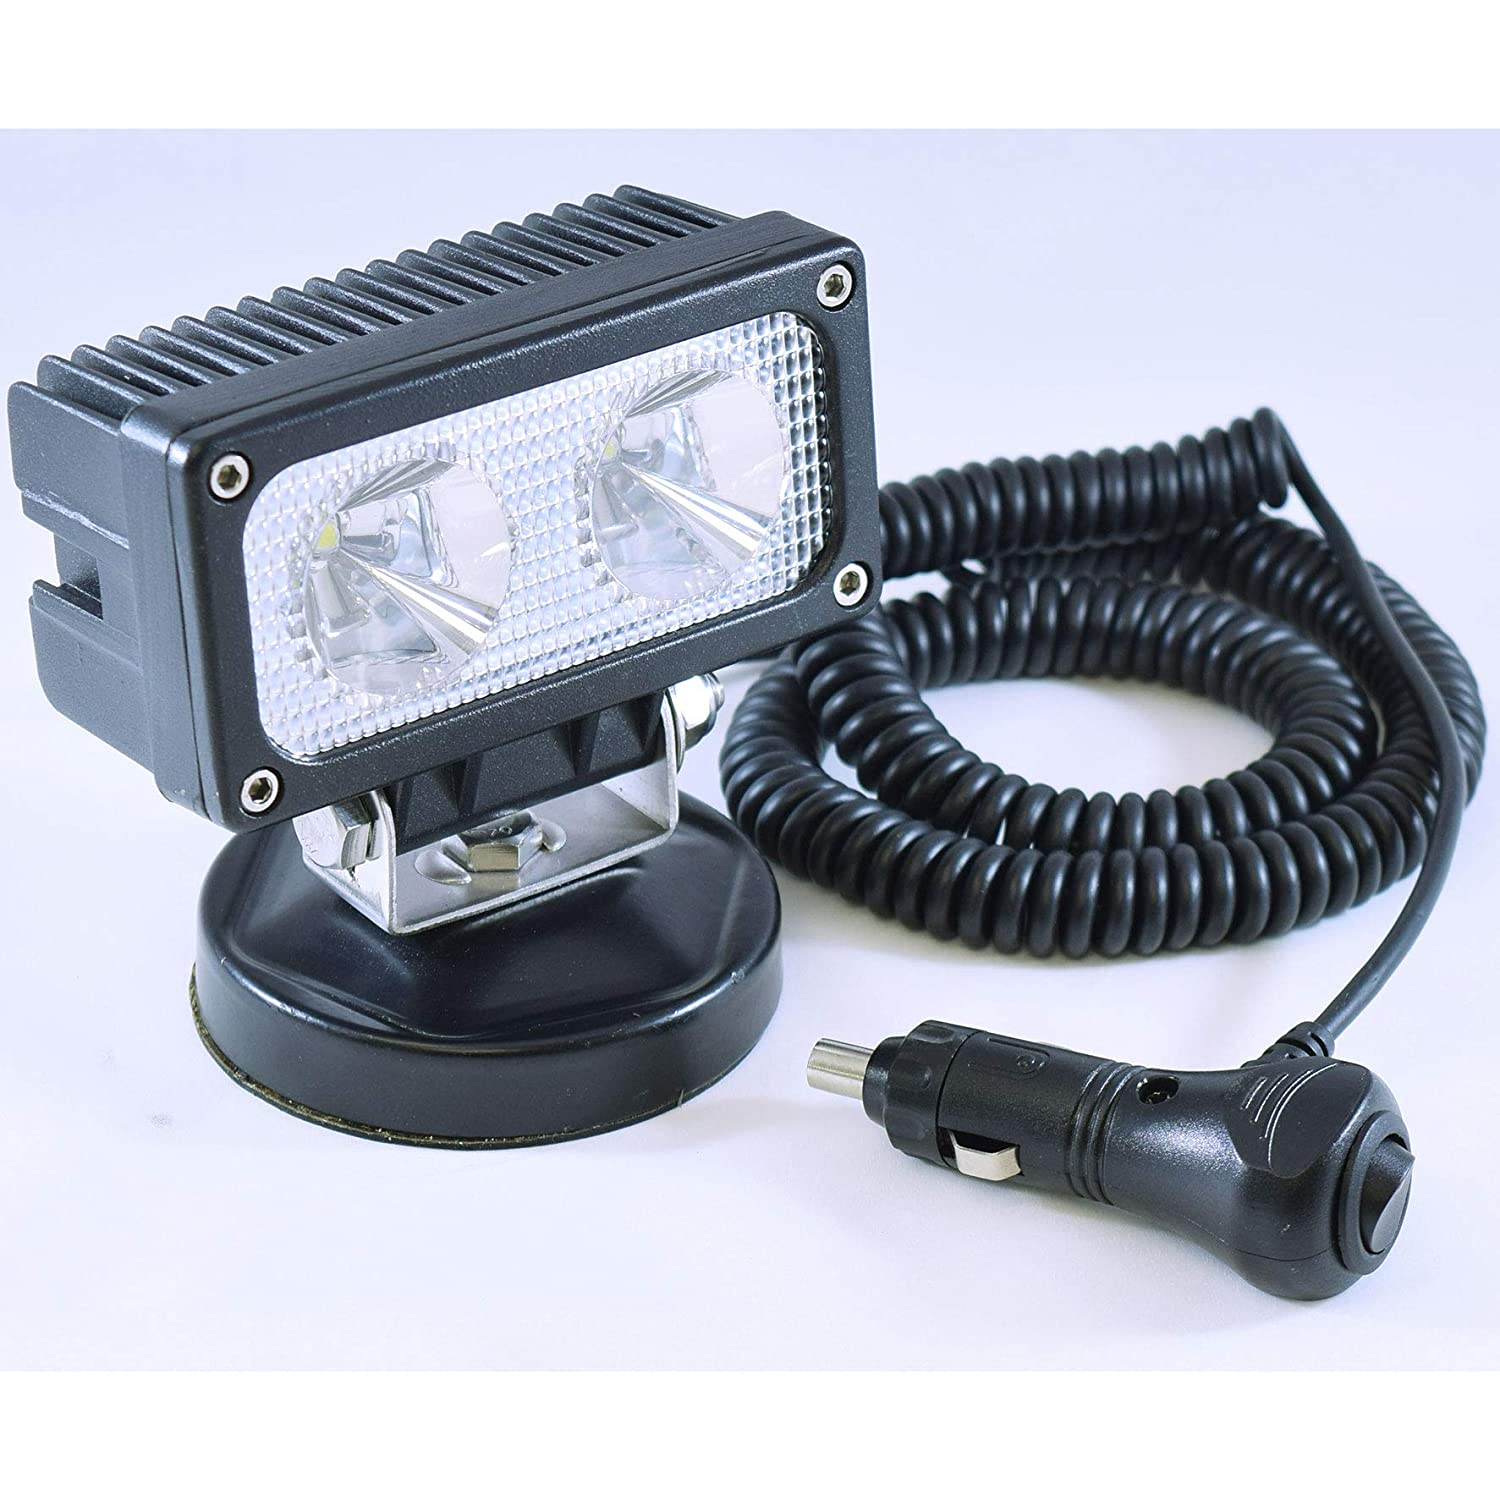 マローンMegasport magnetic-mount Flood Light   B06XFWPGM8